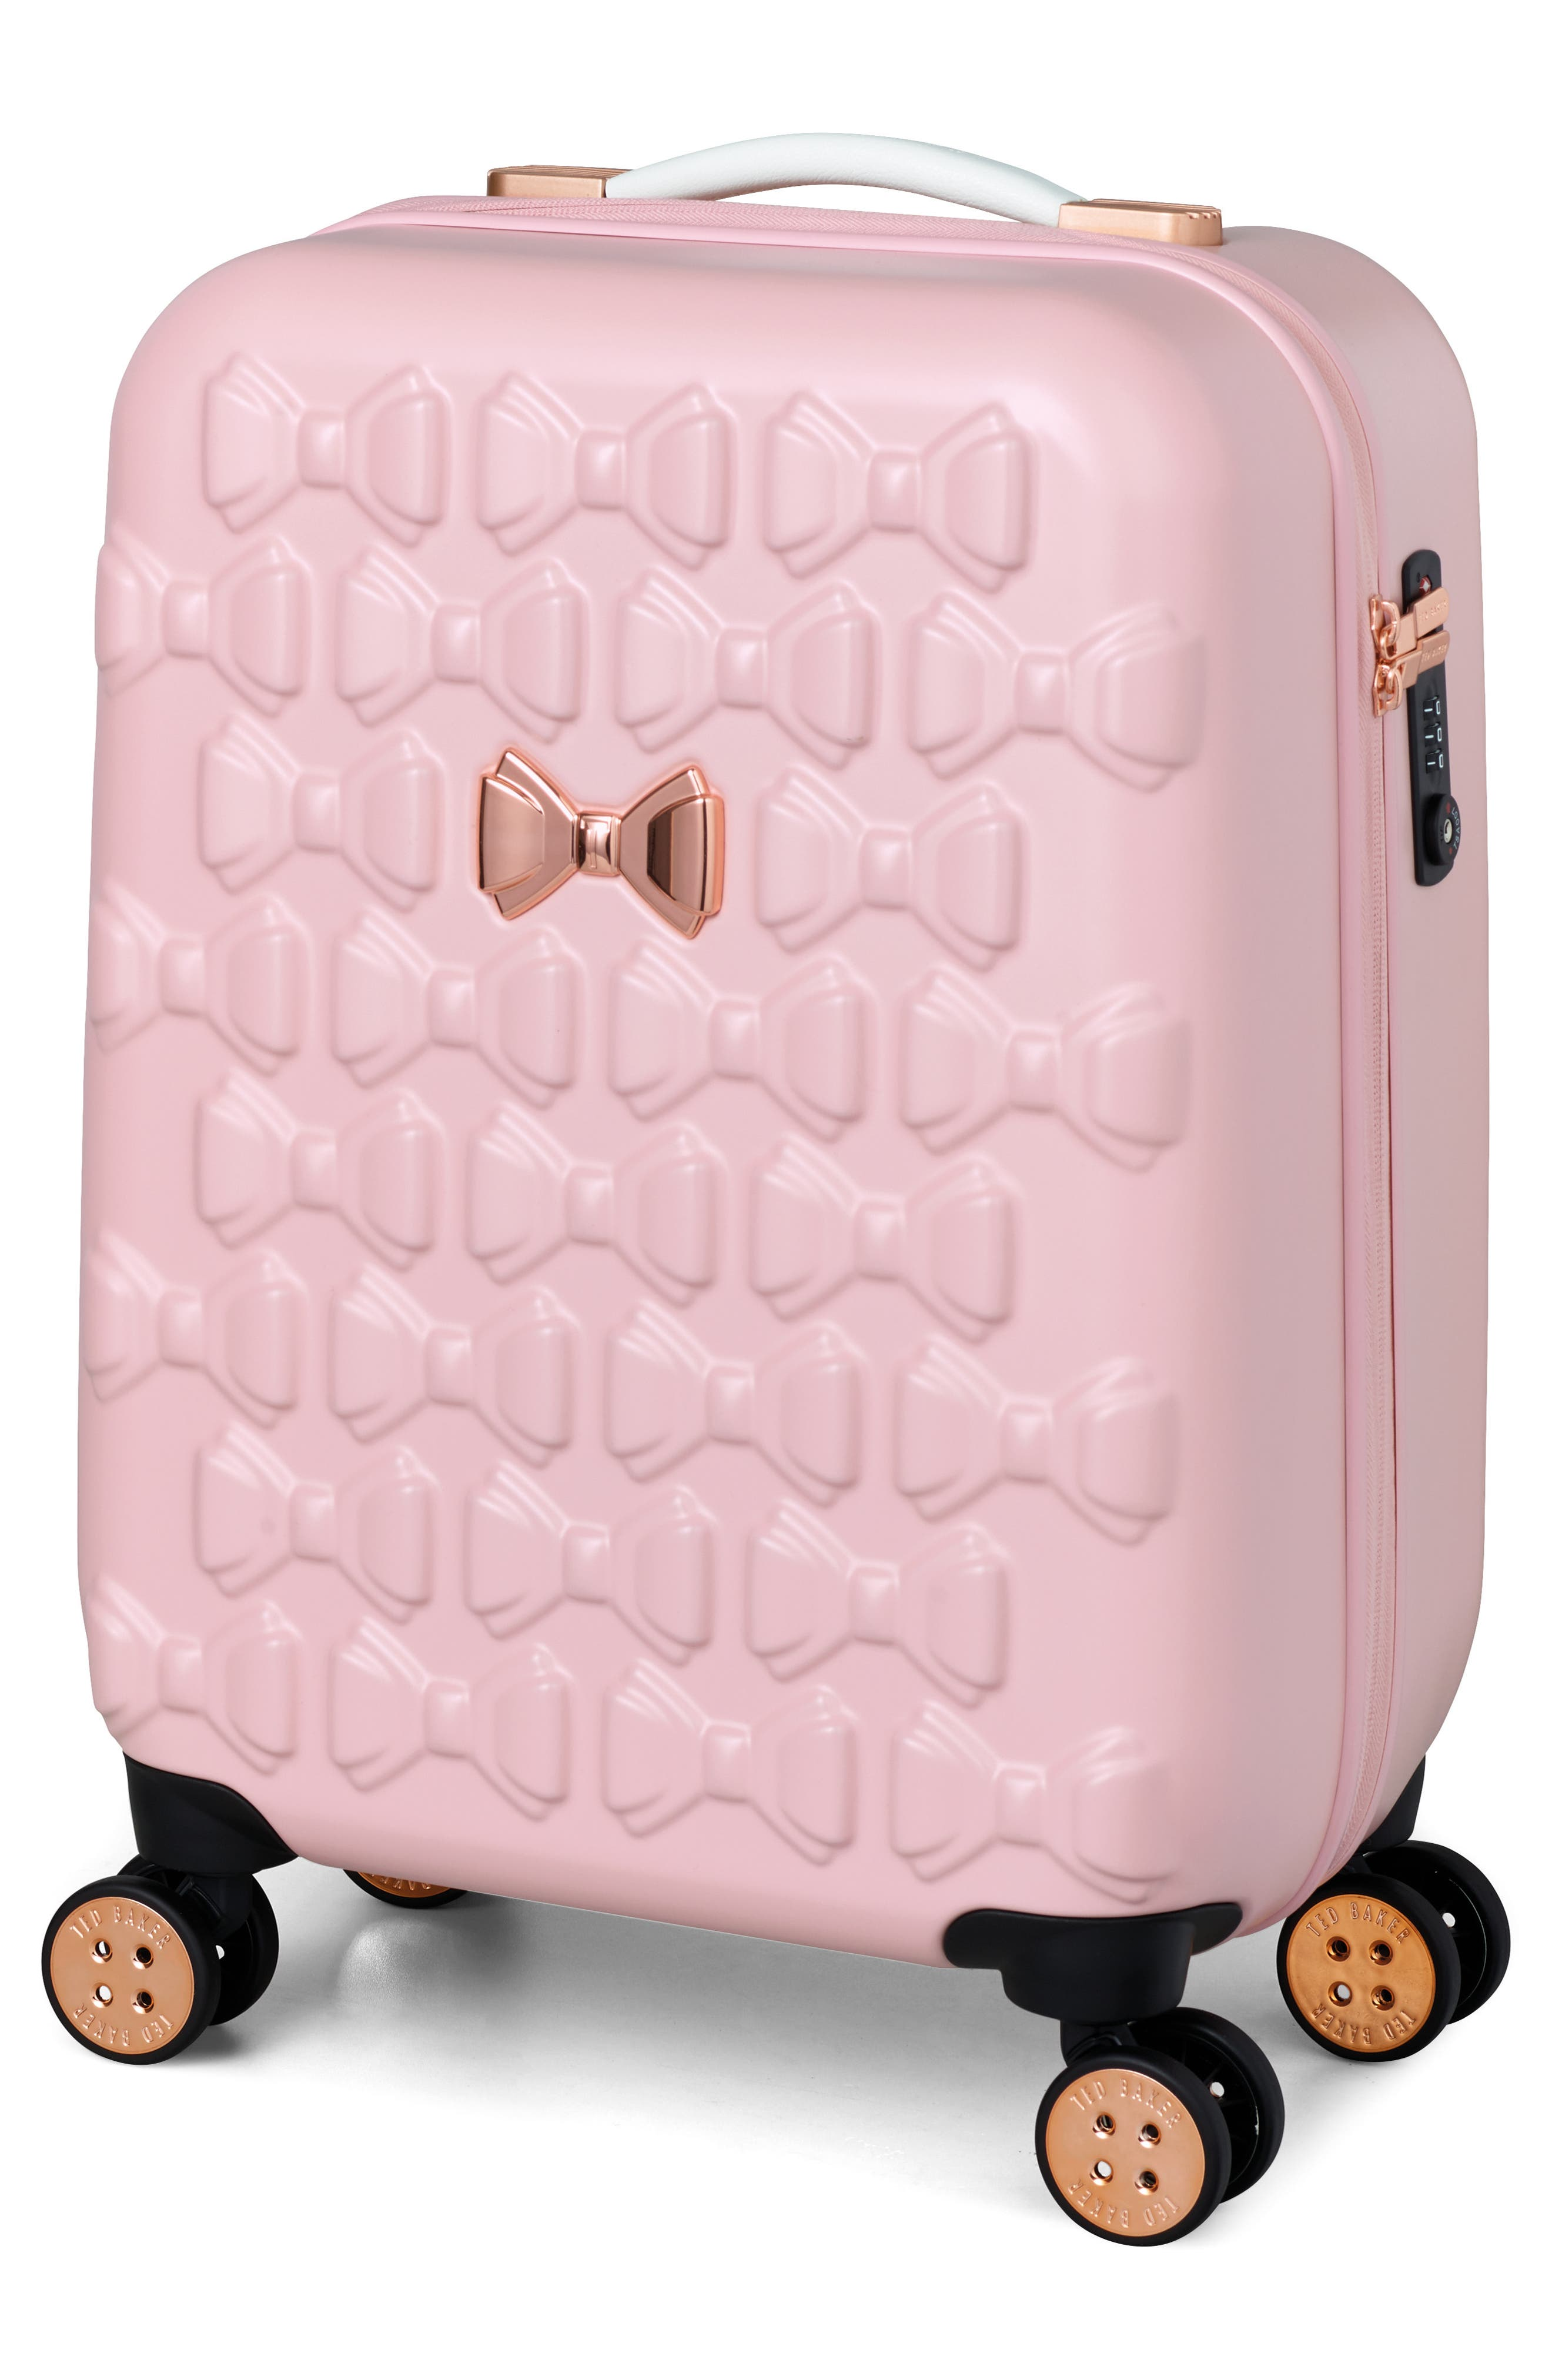 Alternate Image 1 Selected - Ted Baker London Small Beau 22-Inch Bow Embossed Four-Wheel Trolley Suitcase